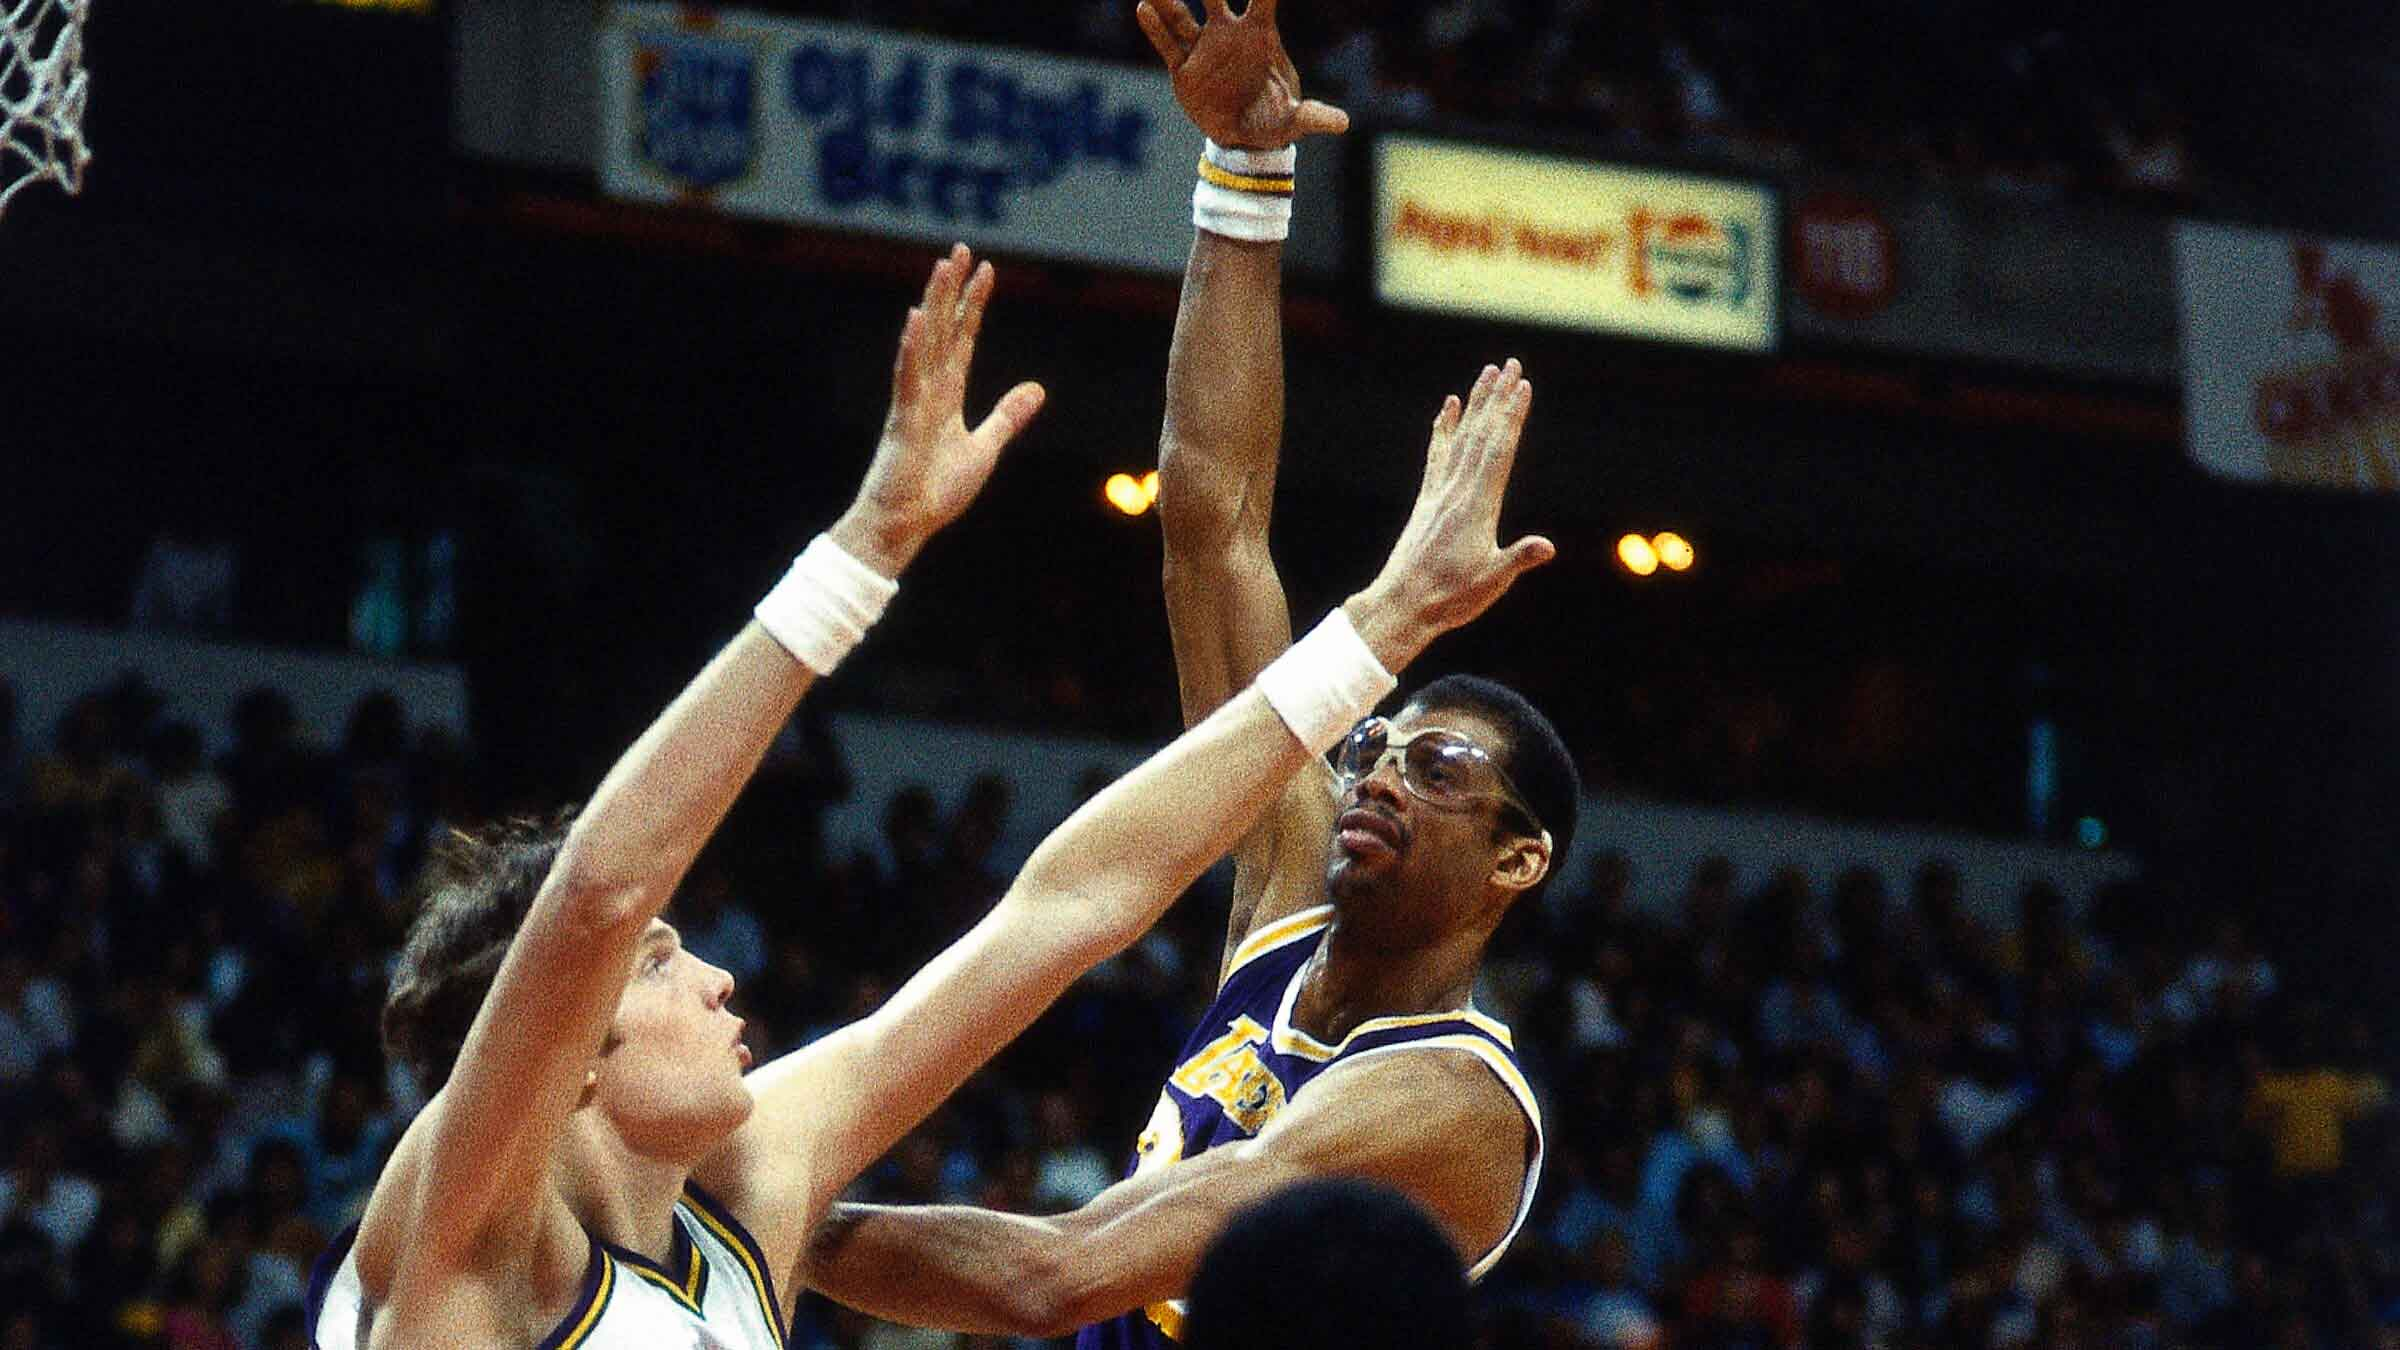 Legendary Moments In NBA History: Abdul-Jabbar becomes all-time leading scorer